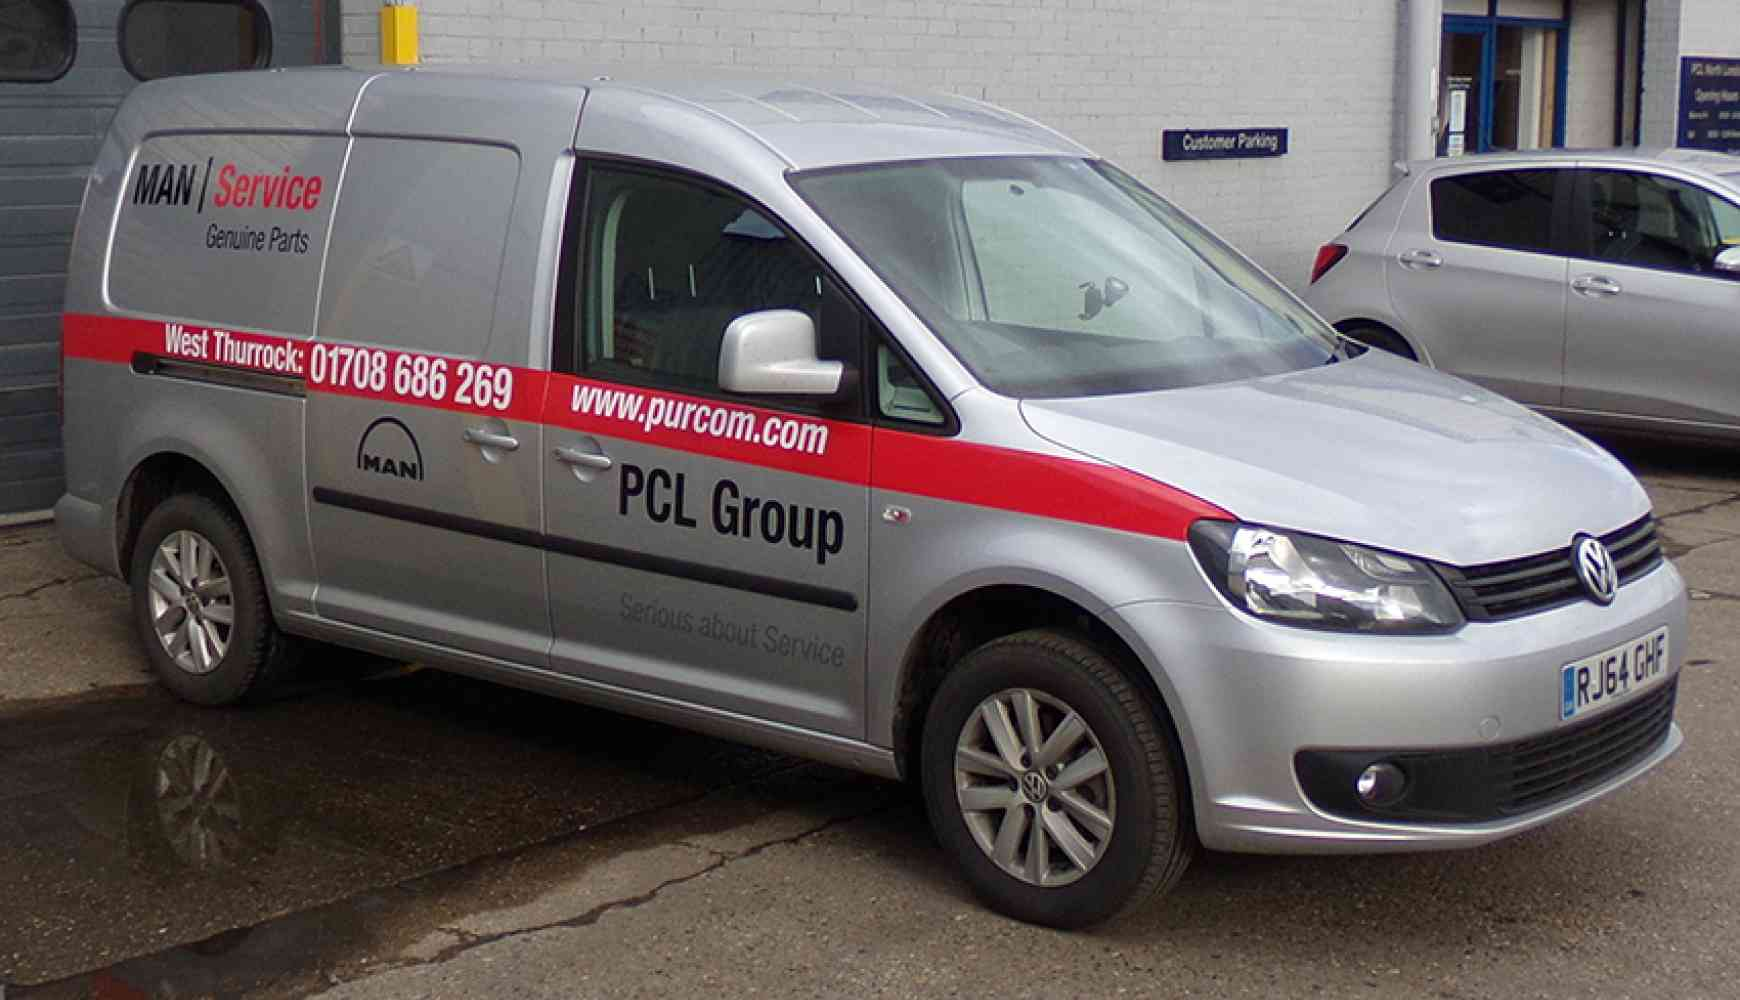 PCL  - We've taken delivery of some new delivery vans!